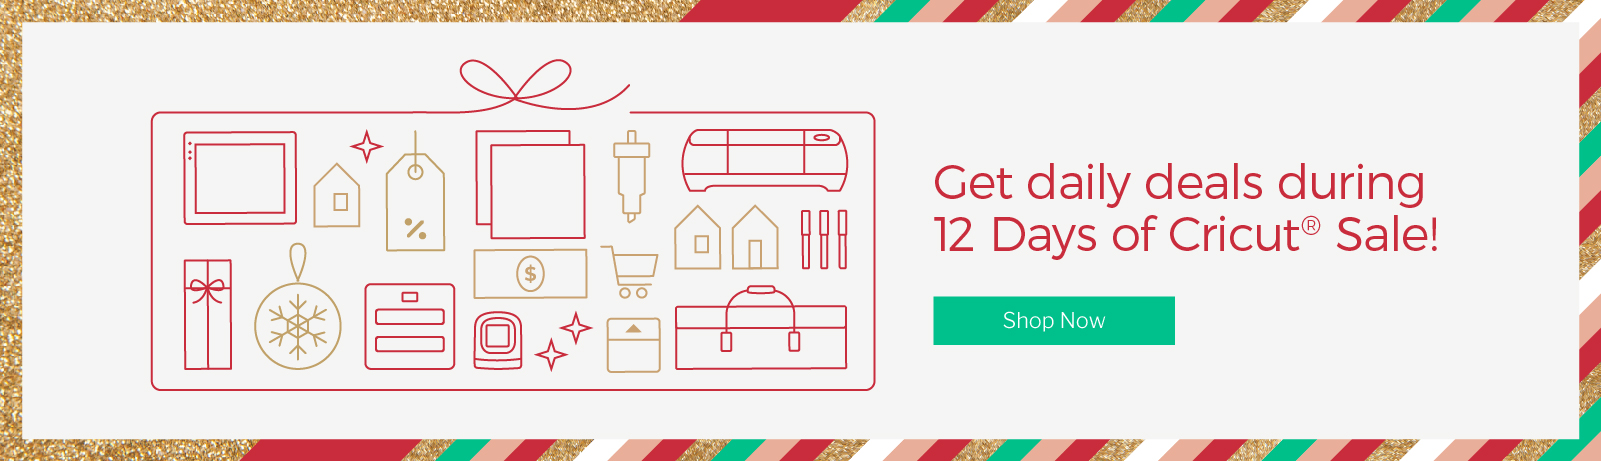 Get daily deals during 12 Days of Cricut Sale!